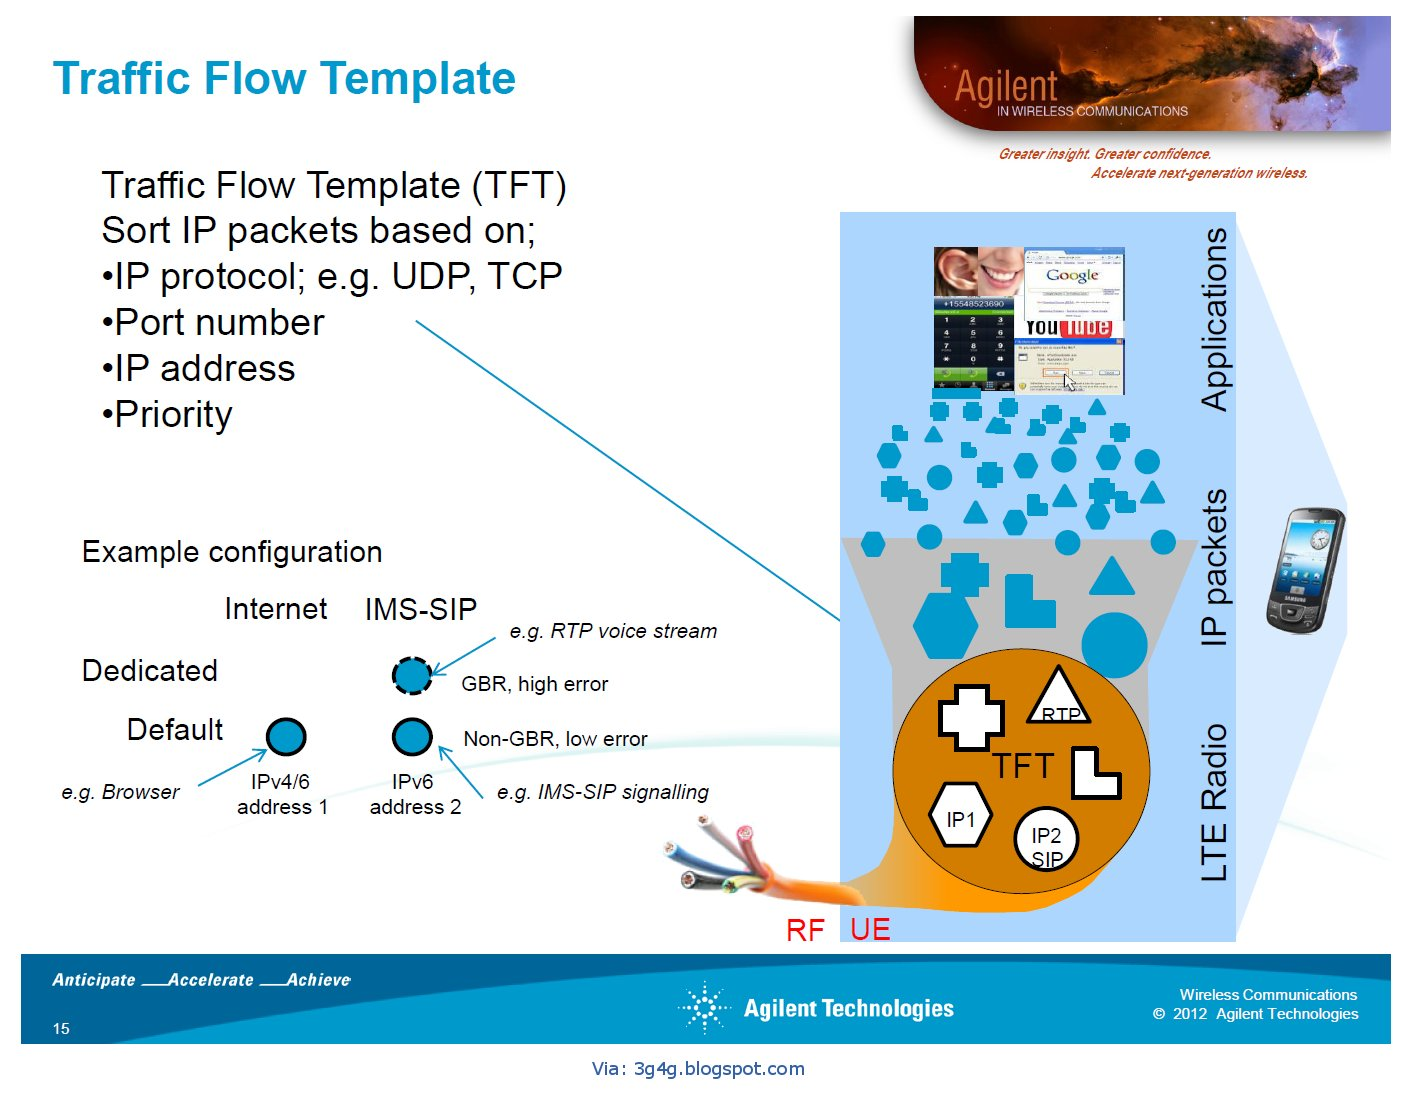 The 3G4G Blog: Traffic Flow Template (TFT), GBR and QoS